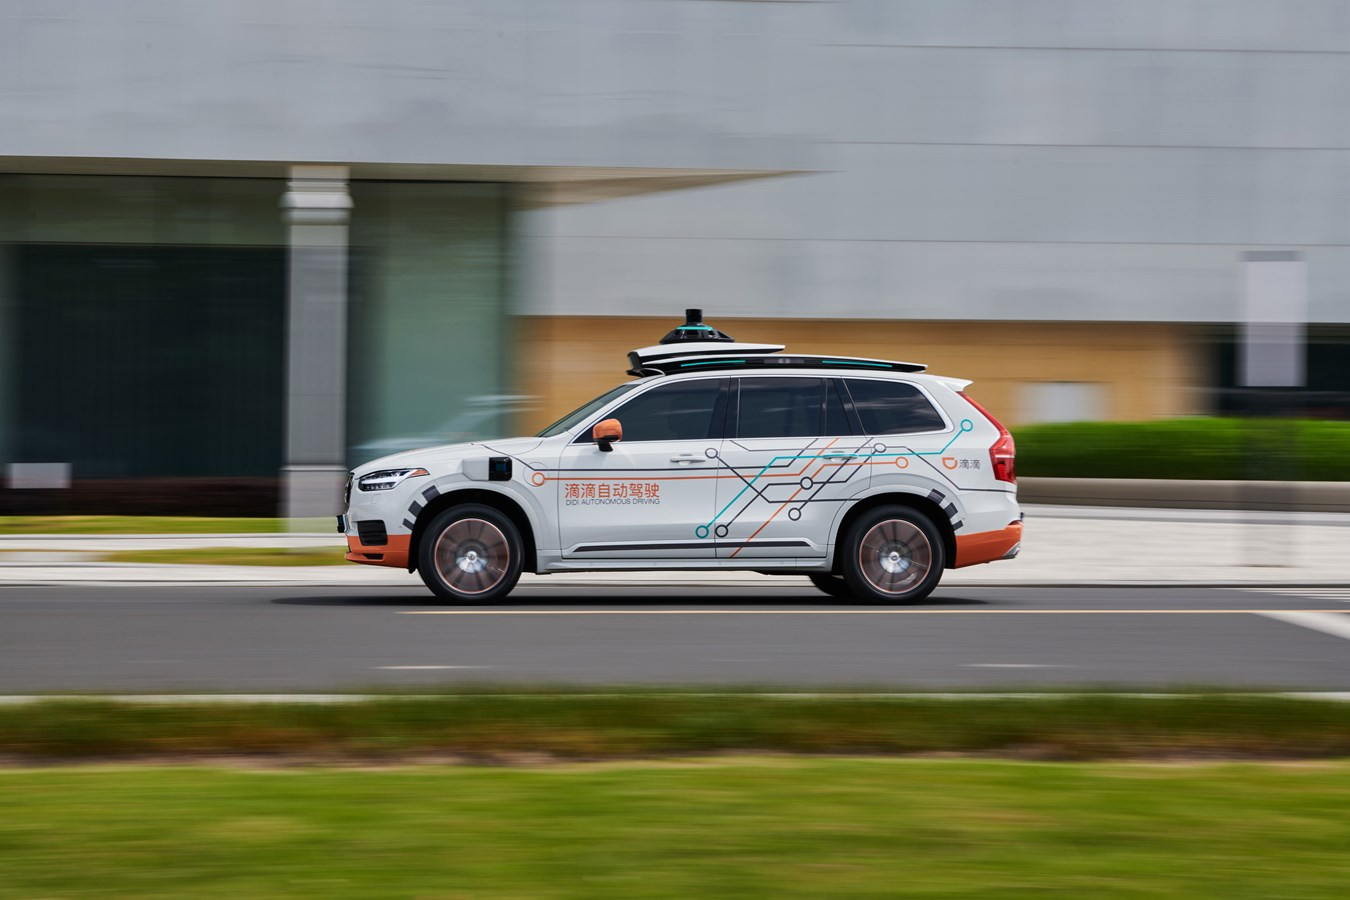 Volvo Cars teams up with world's leading mobility technology platform DiDi for self-driving test fleet